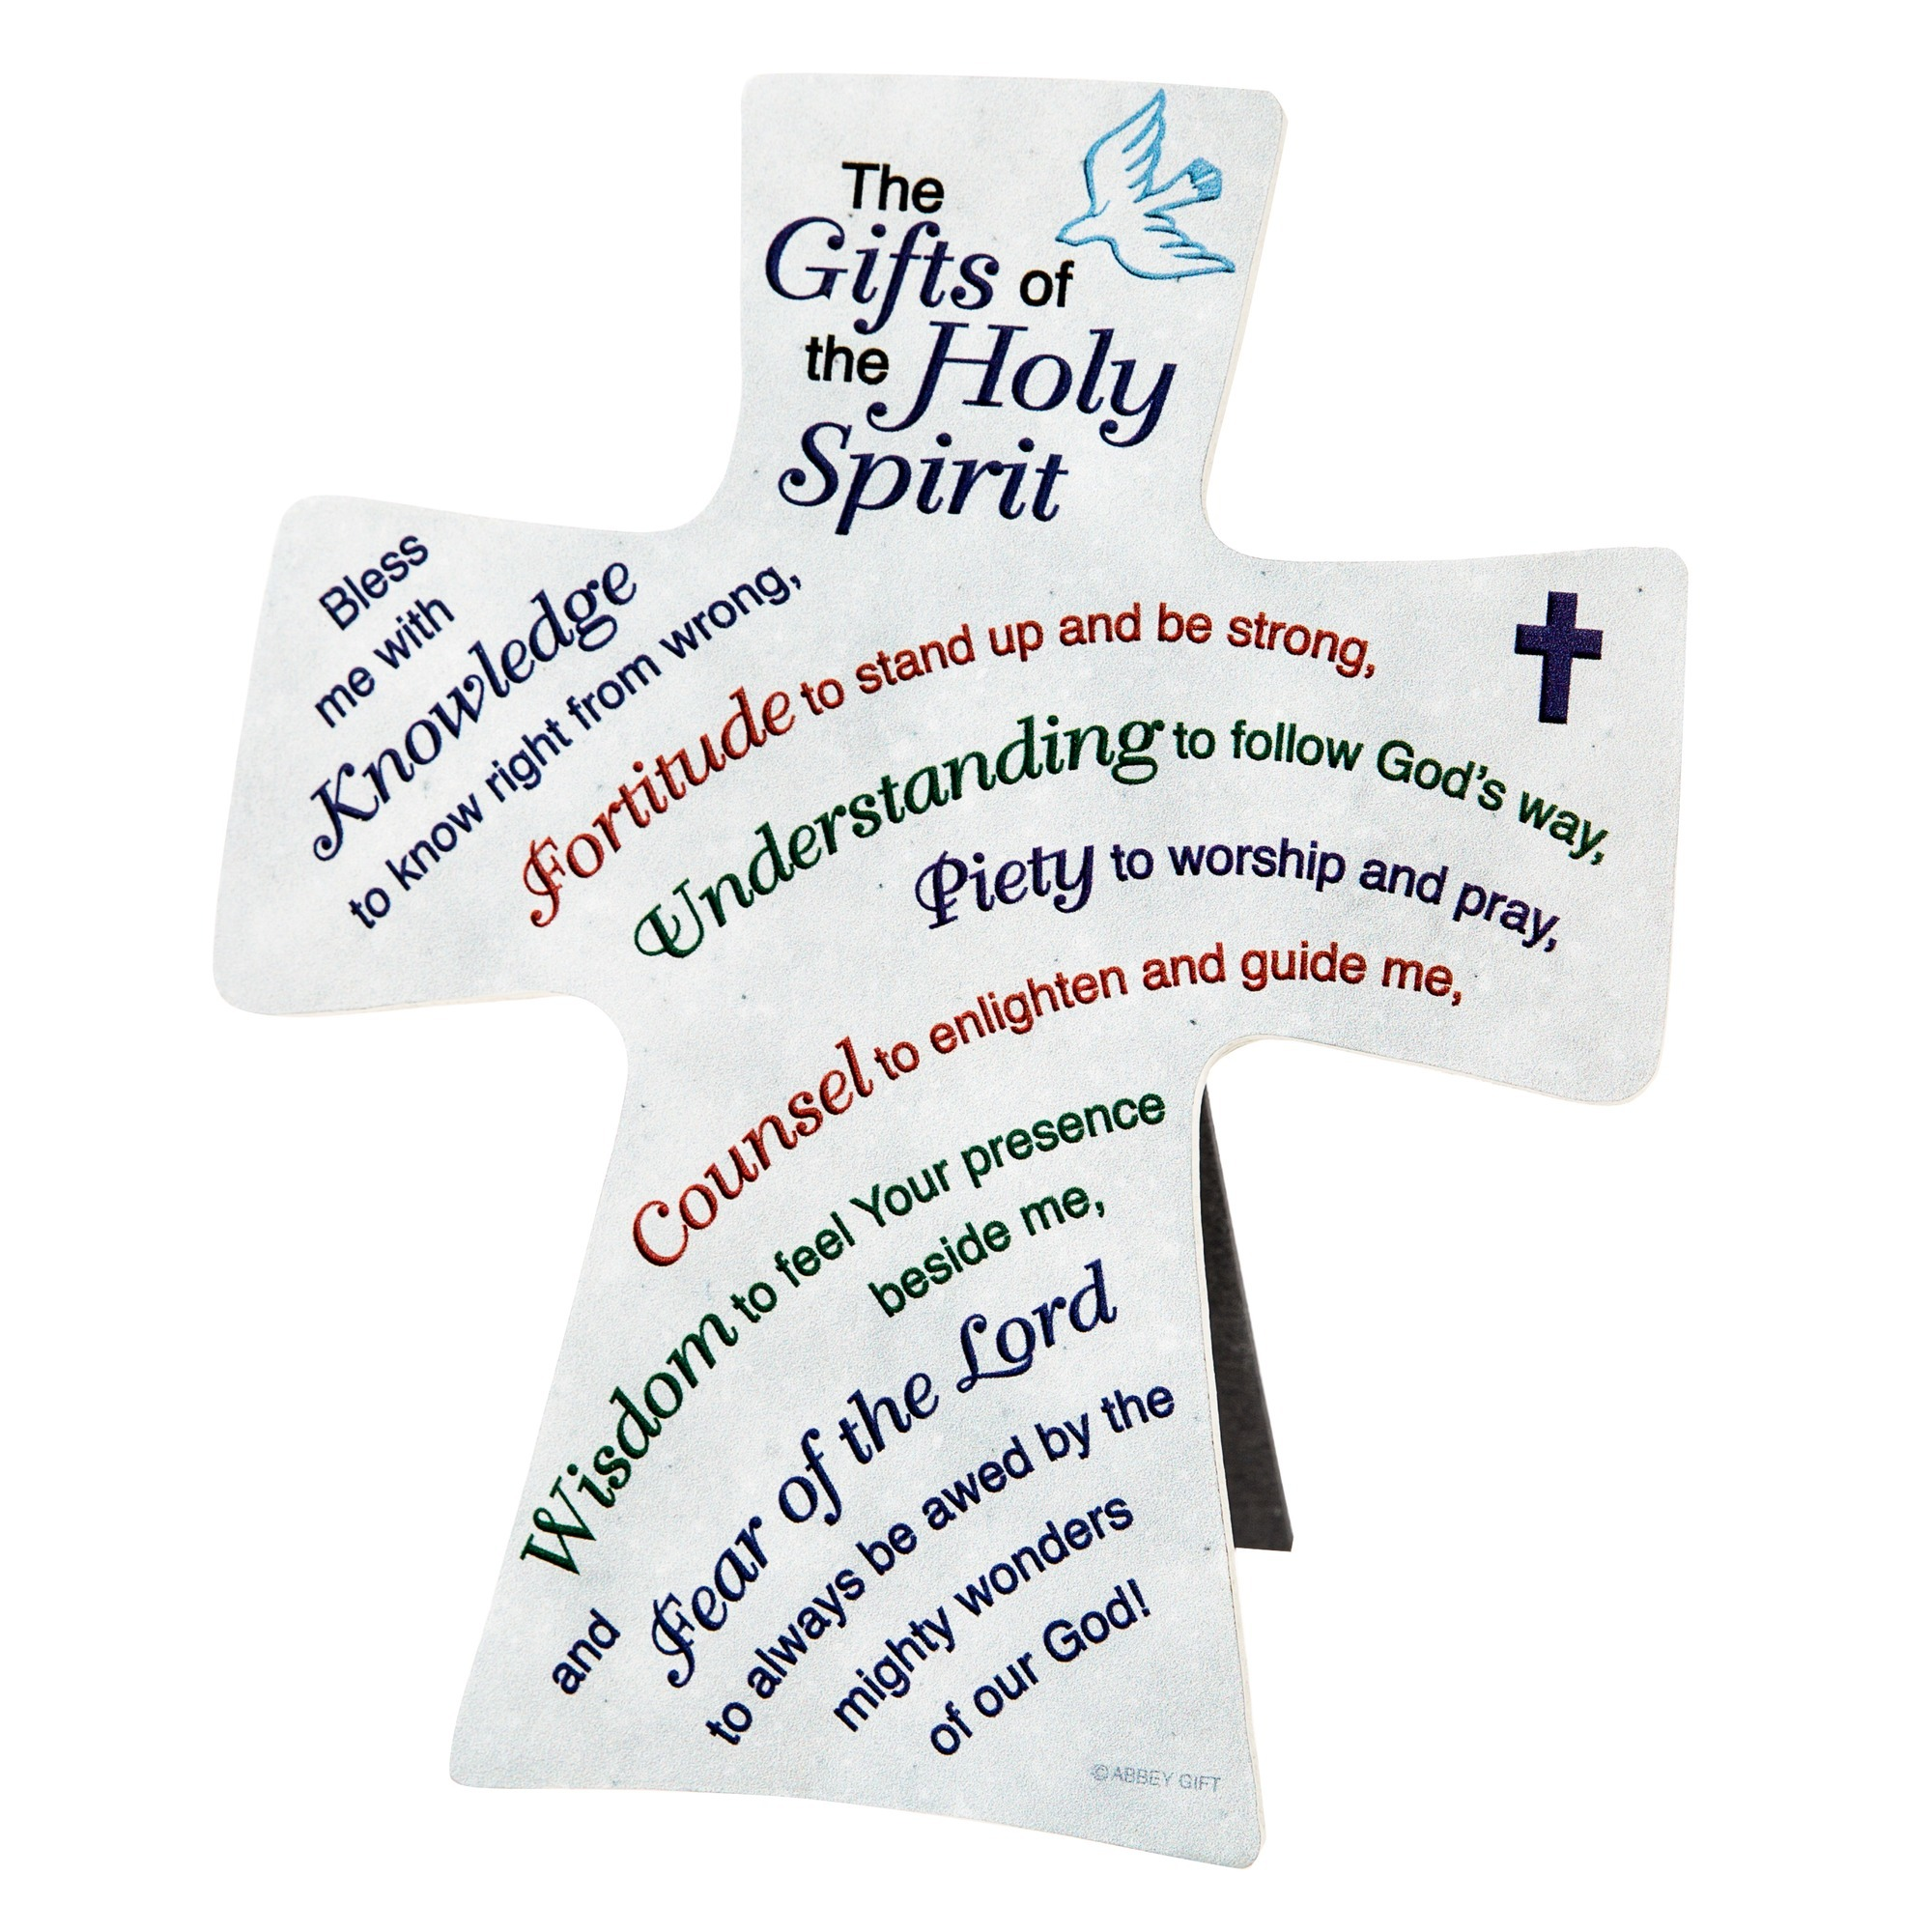 worksheet Fruits And Gifts Of The Holy Spirit Worksheet gifts of the holy spirit cross plaque 6 inch catholic company inch